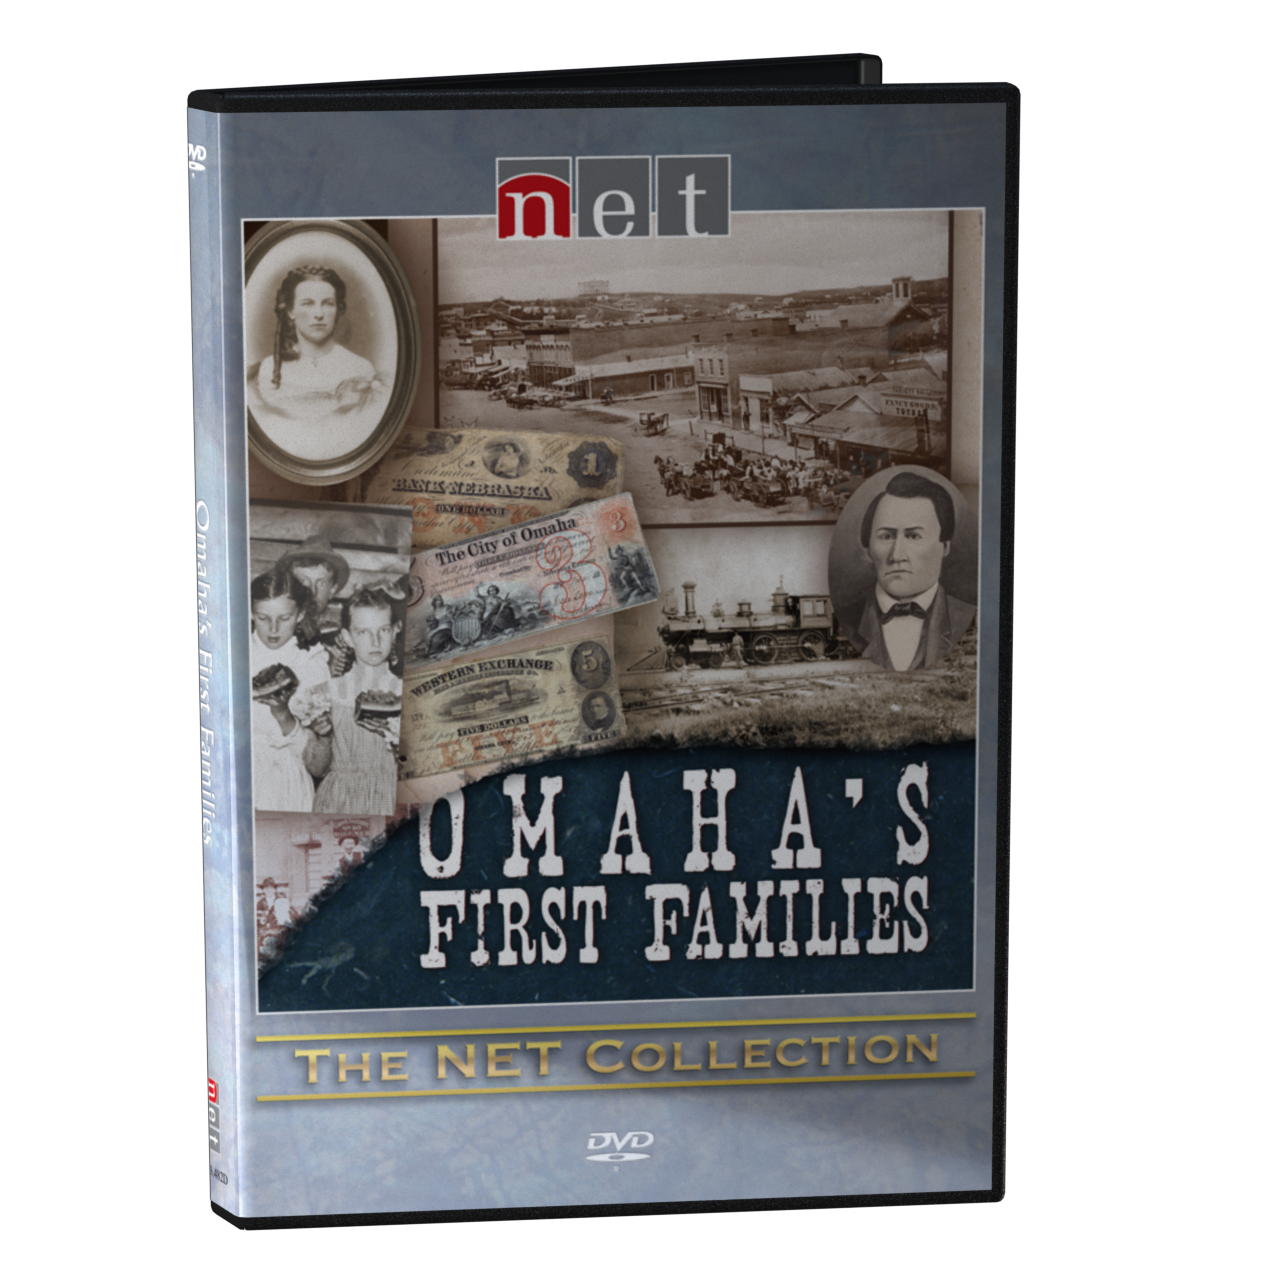 Omaha's First Families